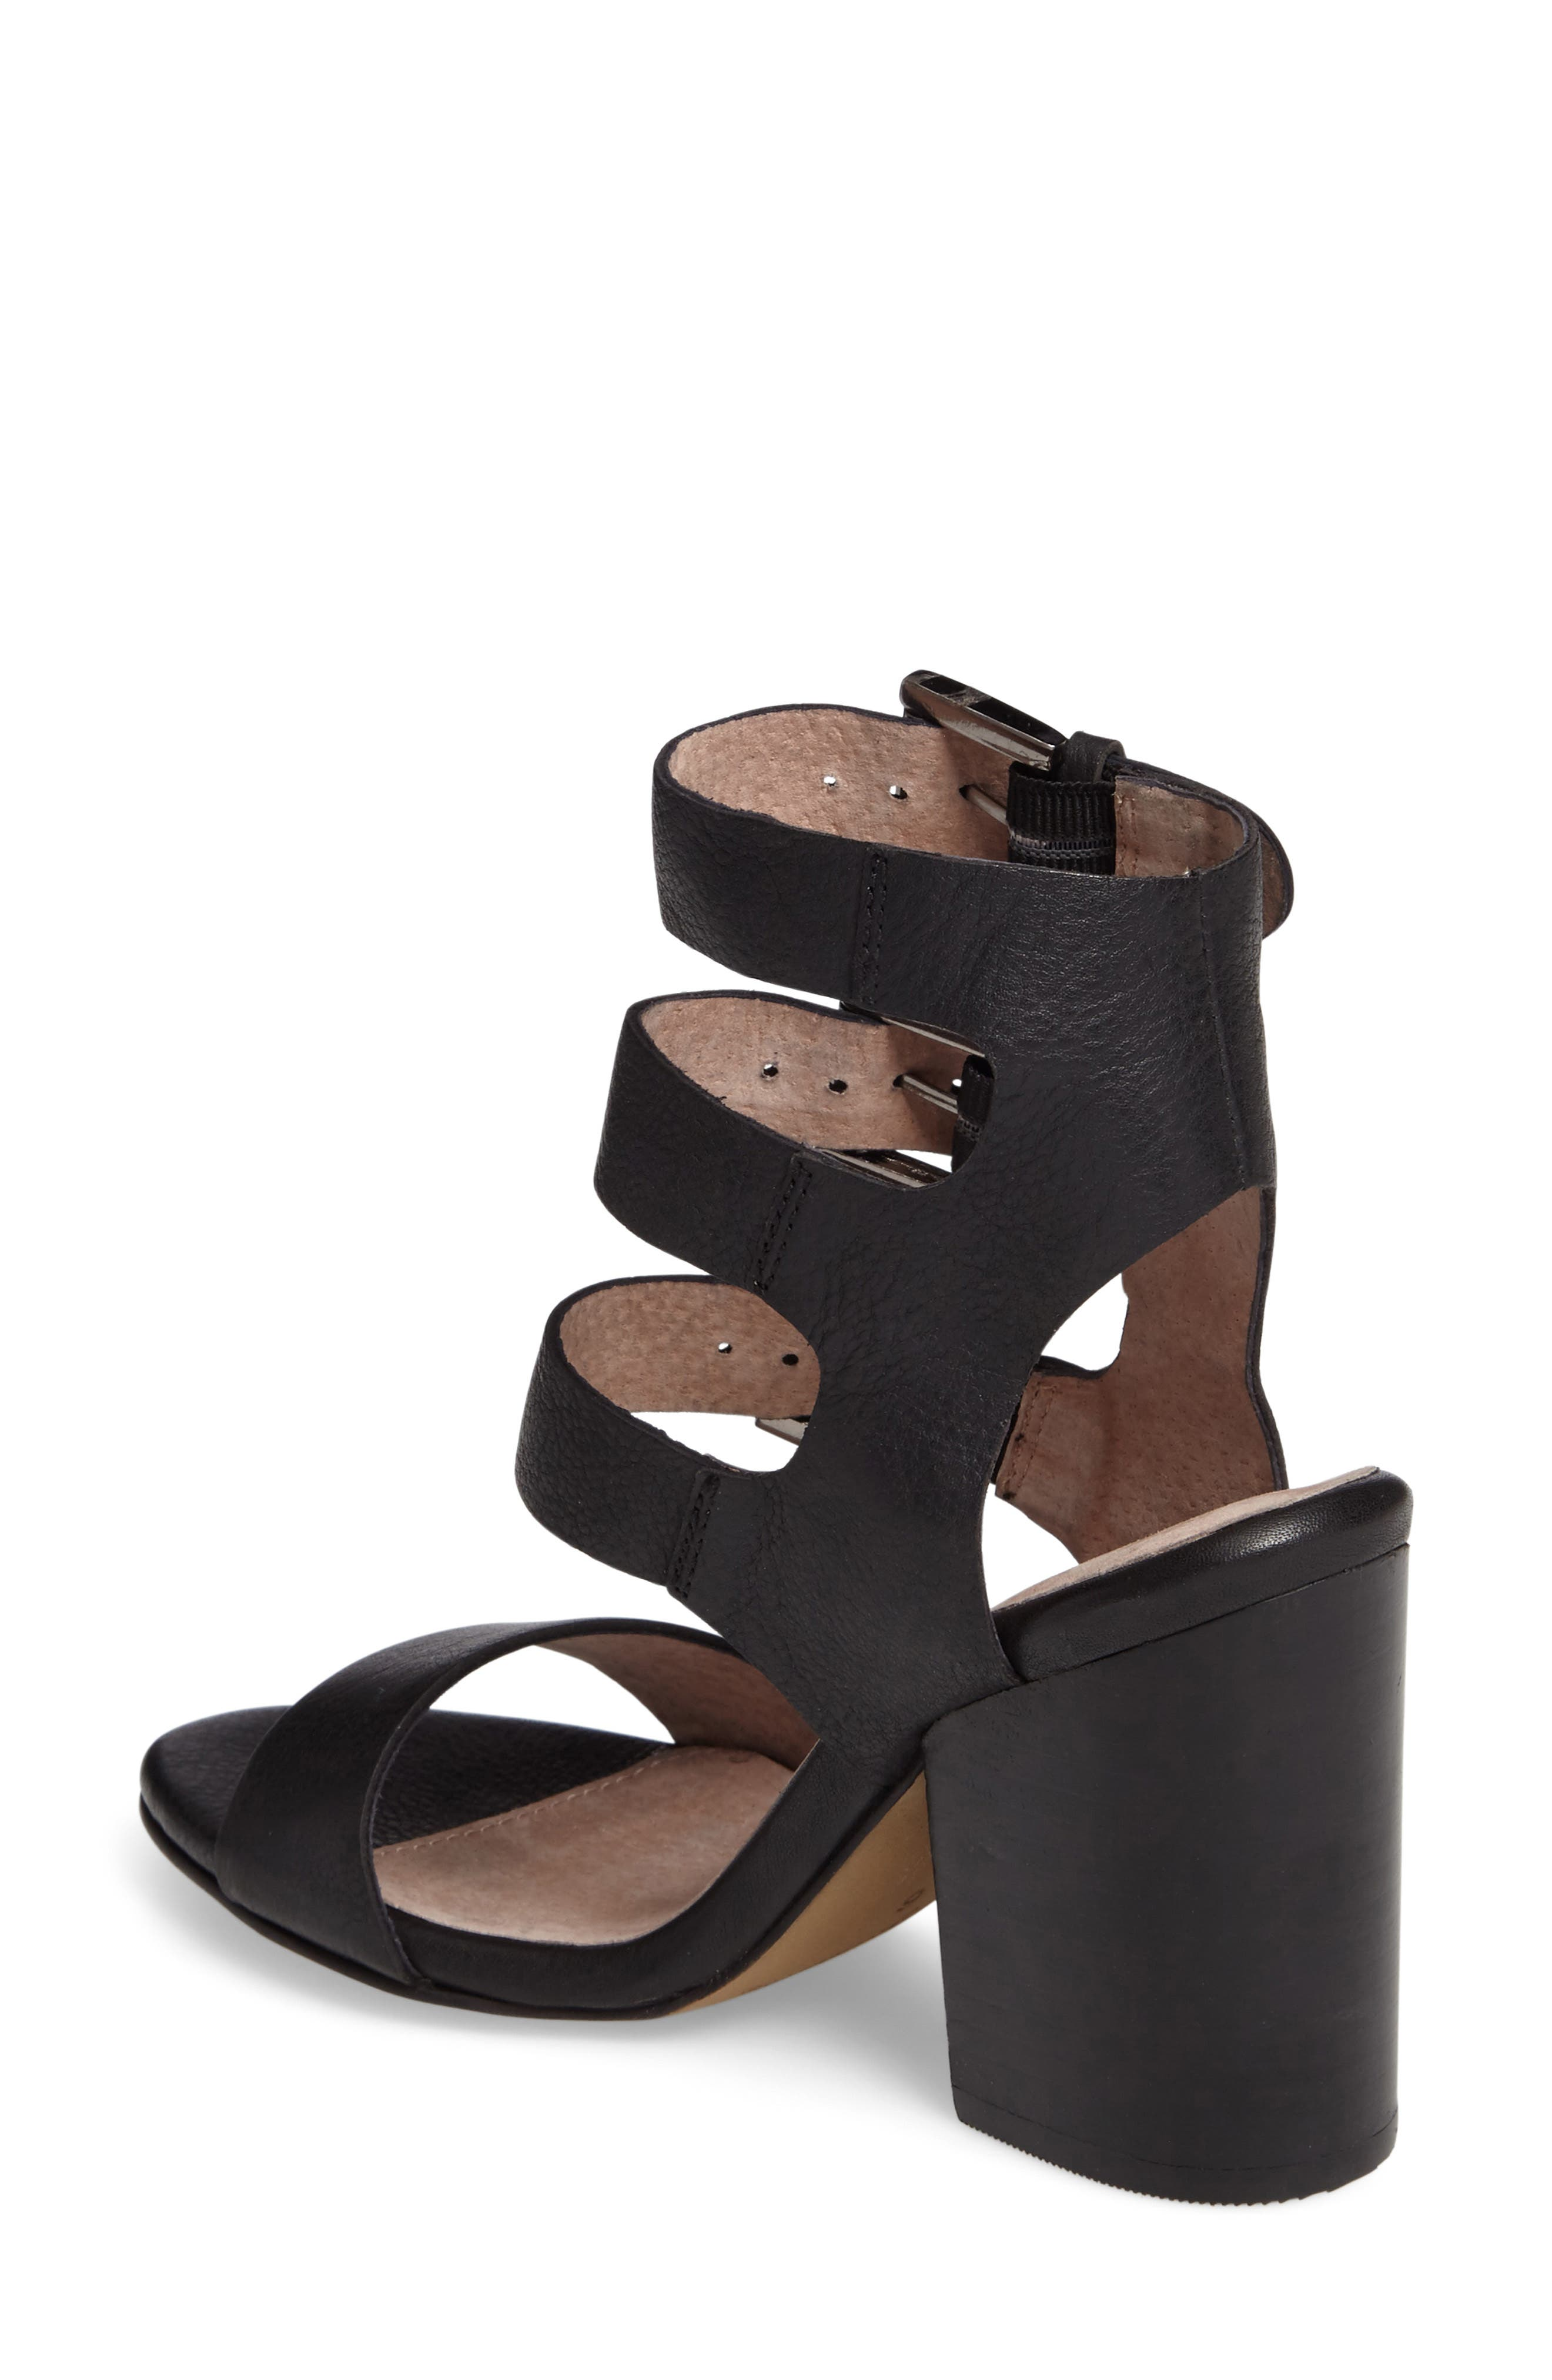 Dilly Dally Sandal,                             Alternate thumbnail 2, color,                             001